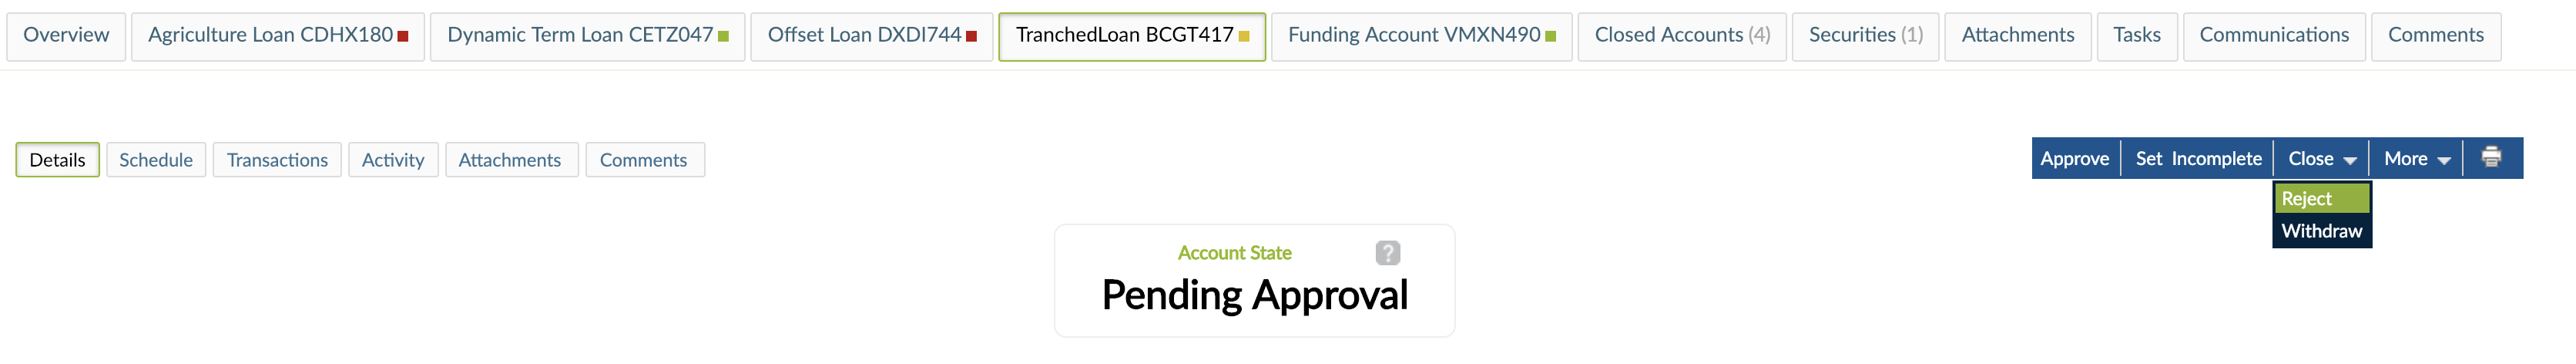 Rejecting the Loan Account from Close drop-down menu